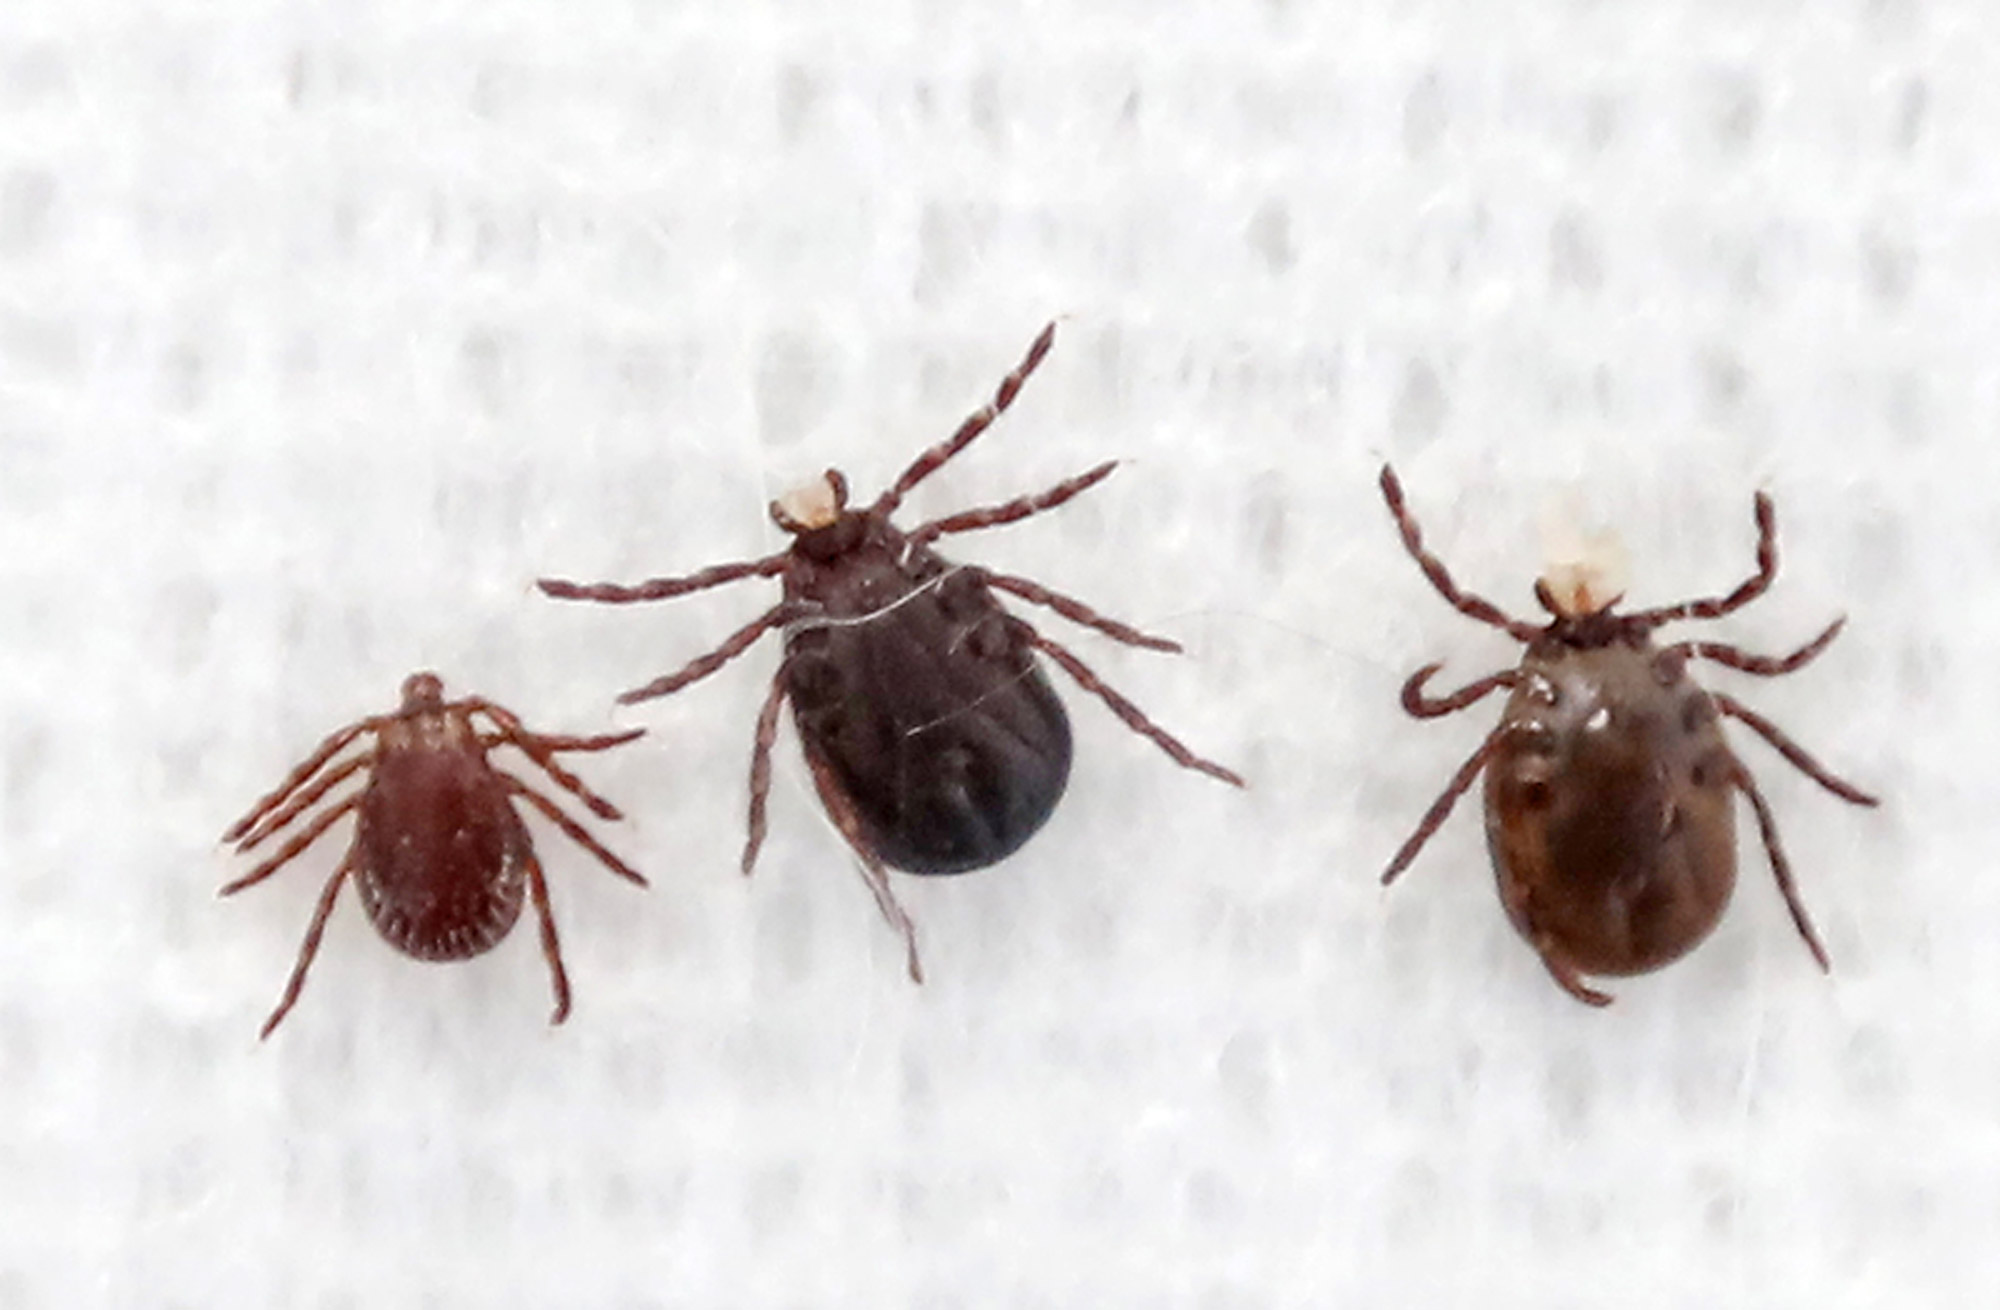 Ticks are here to stay says biologist